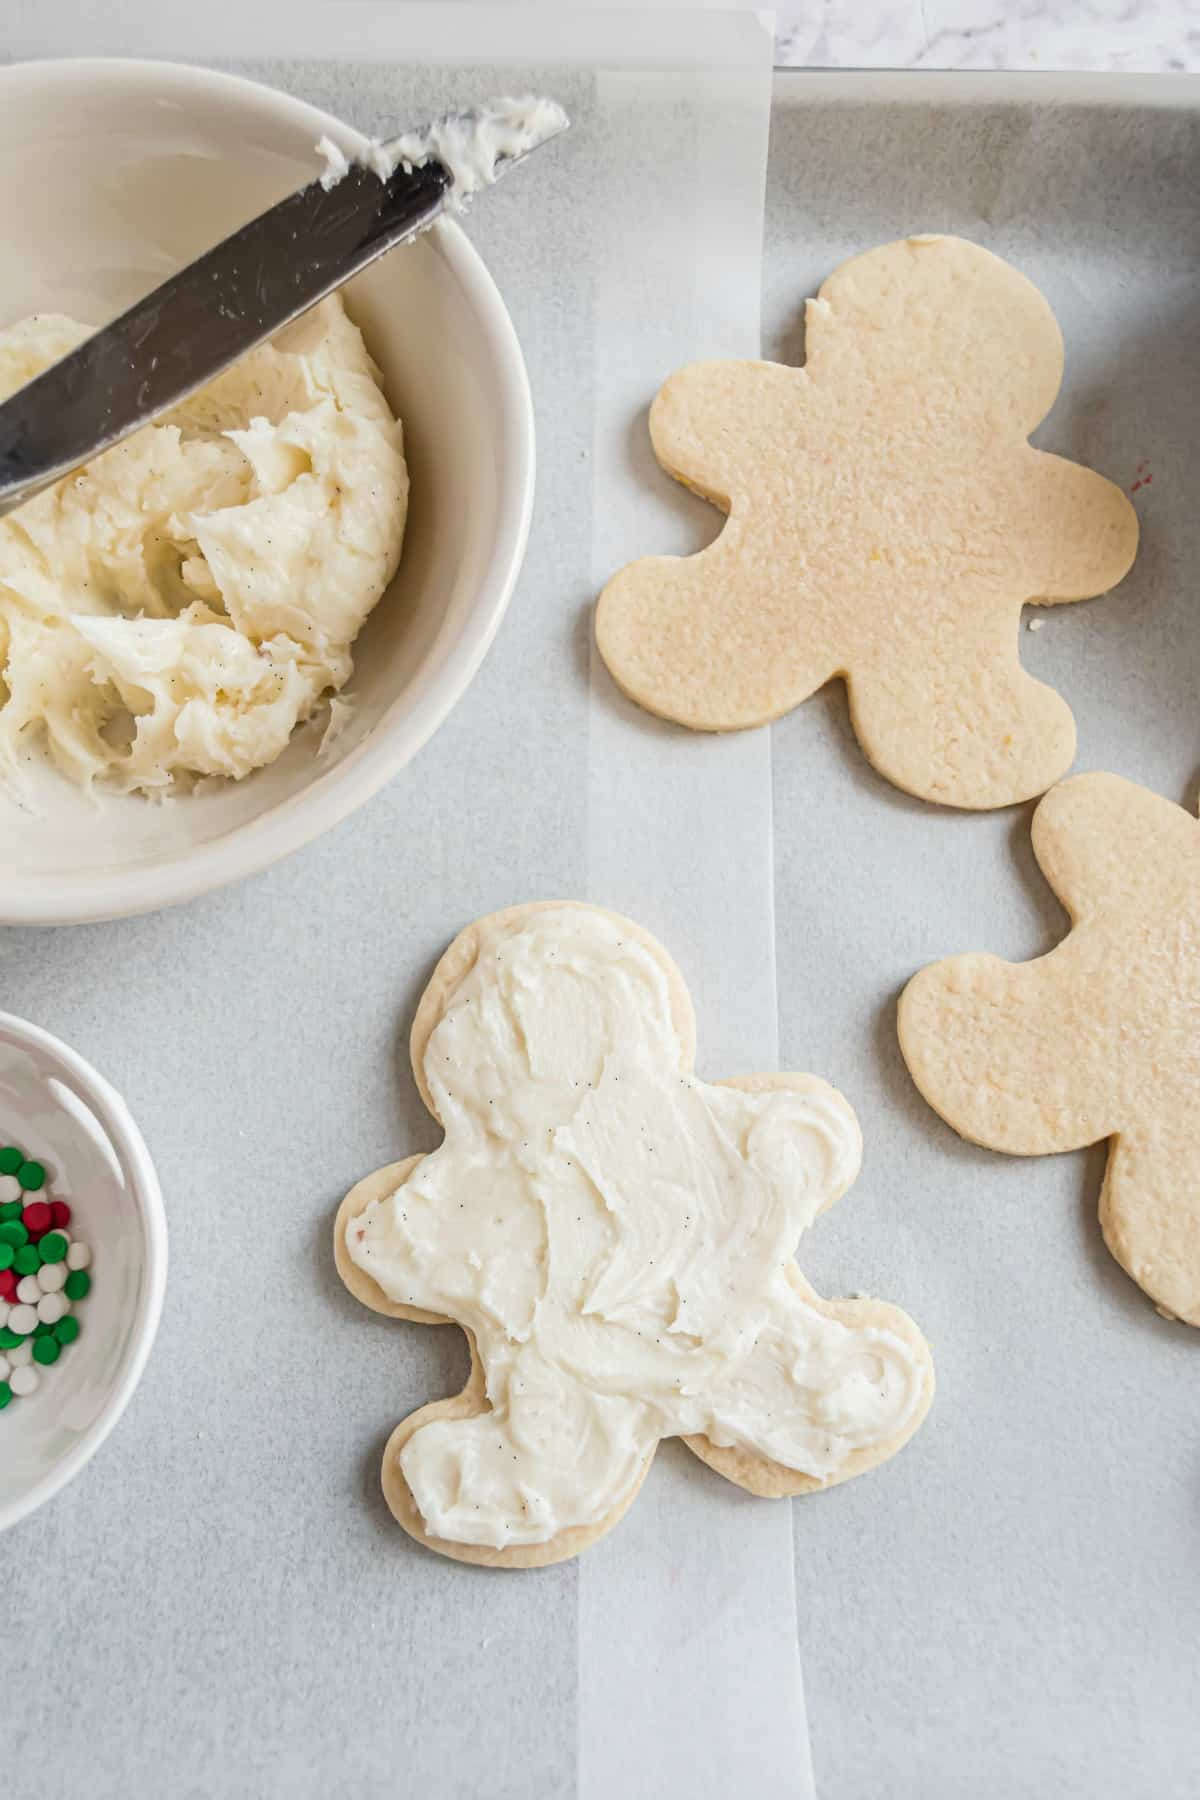 Sugar cookie frosting on gingerbread cut out cookie.